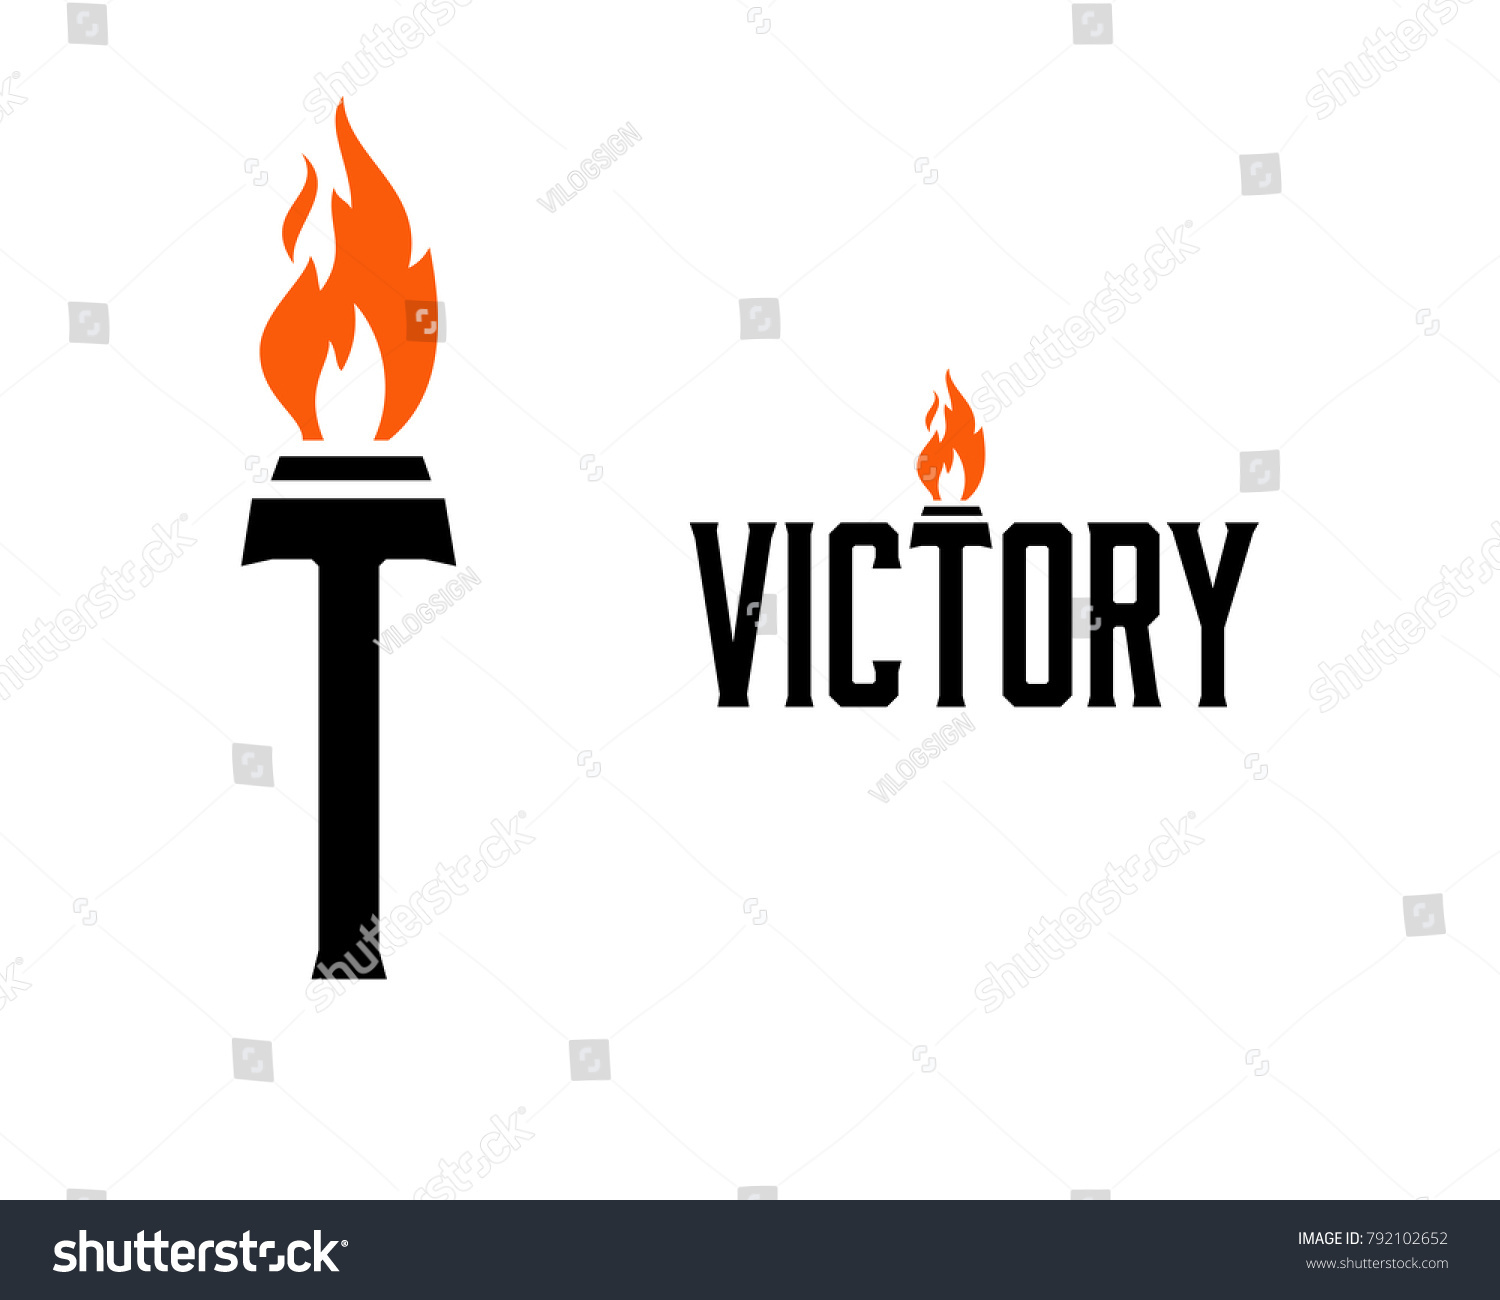 Letter Victory Olympic Torch Fire On Stock Vector 792102652 ... for Olympic Torch Fire  284dqh